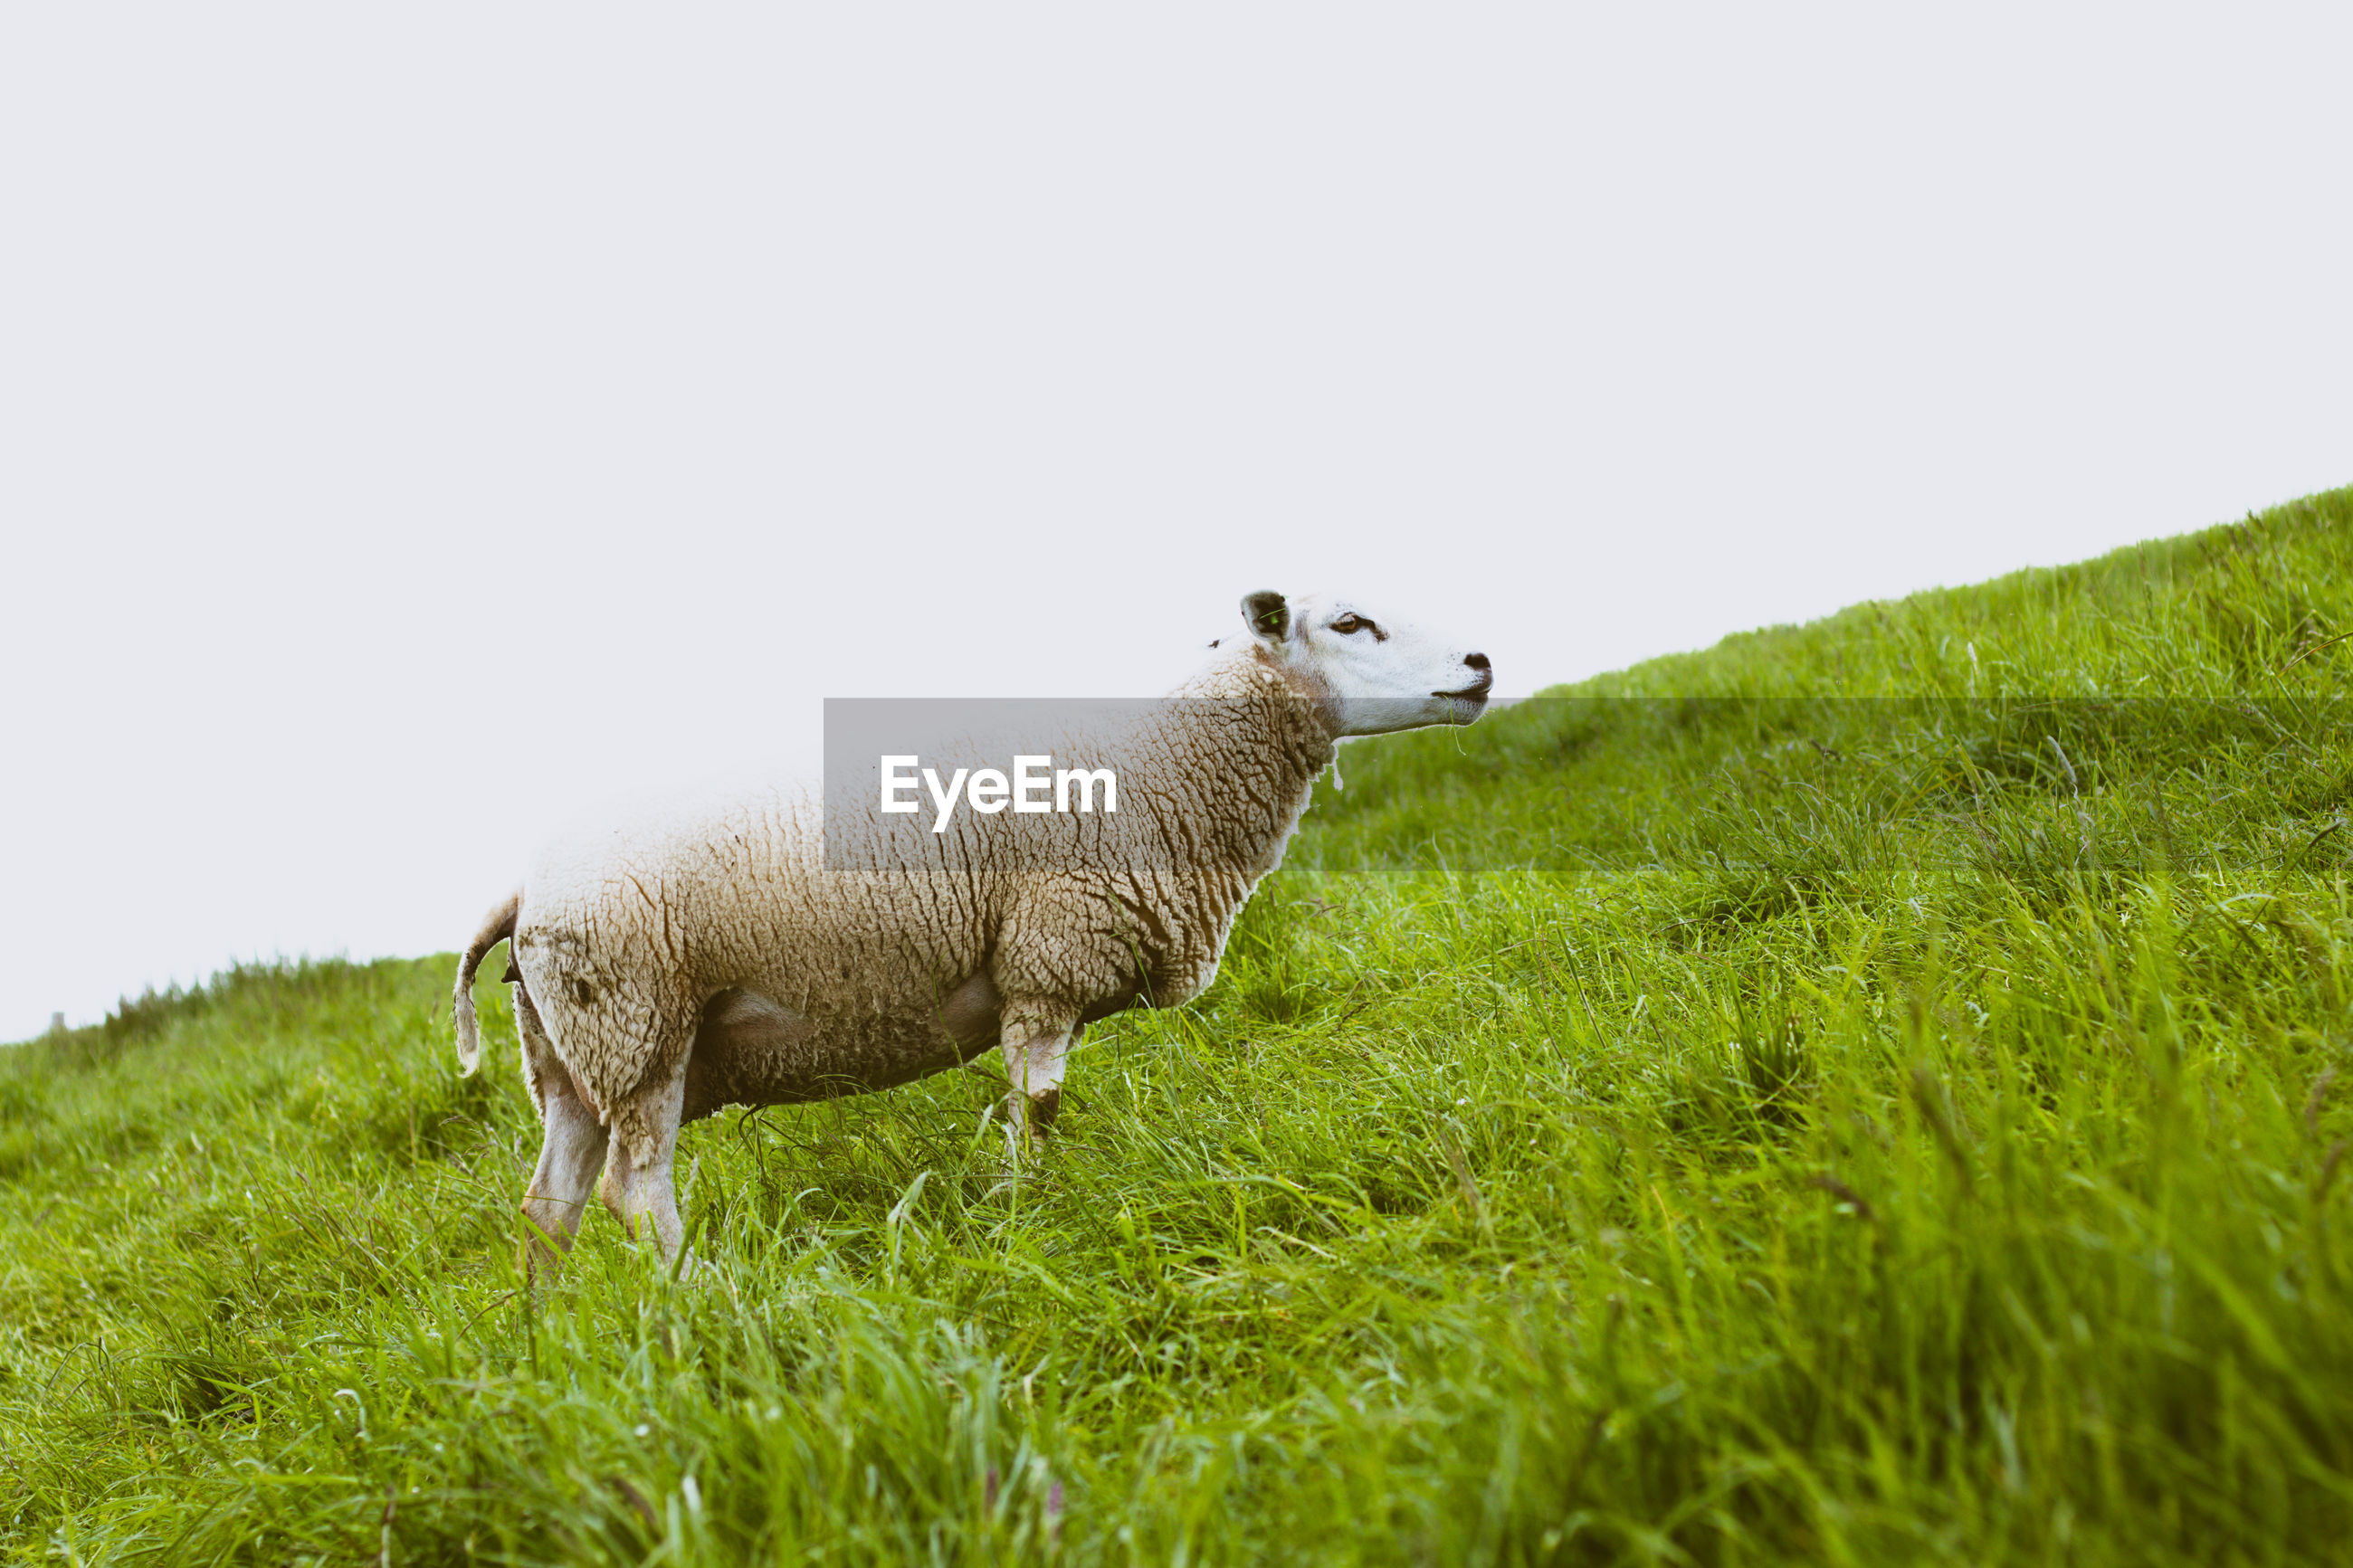 Sheep on grass against clear sky